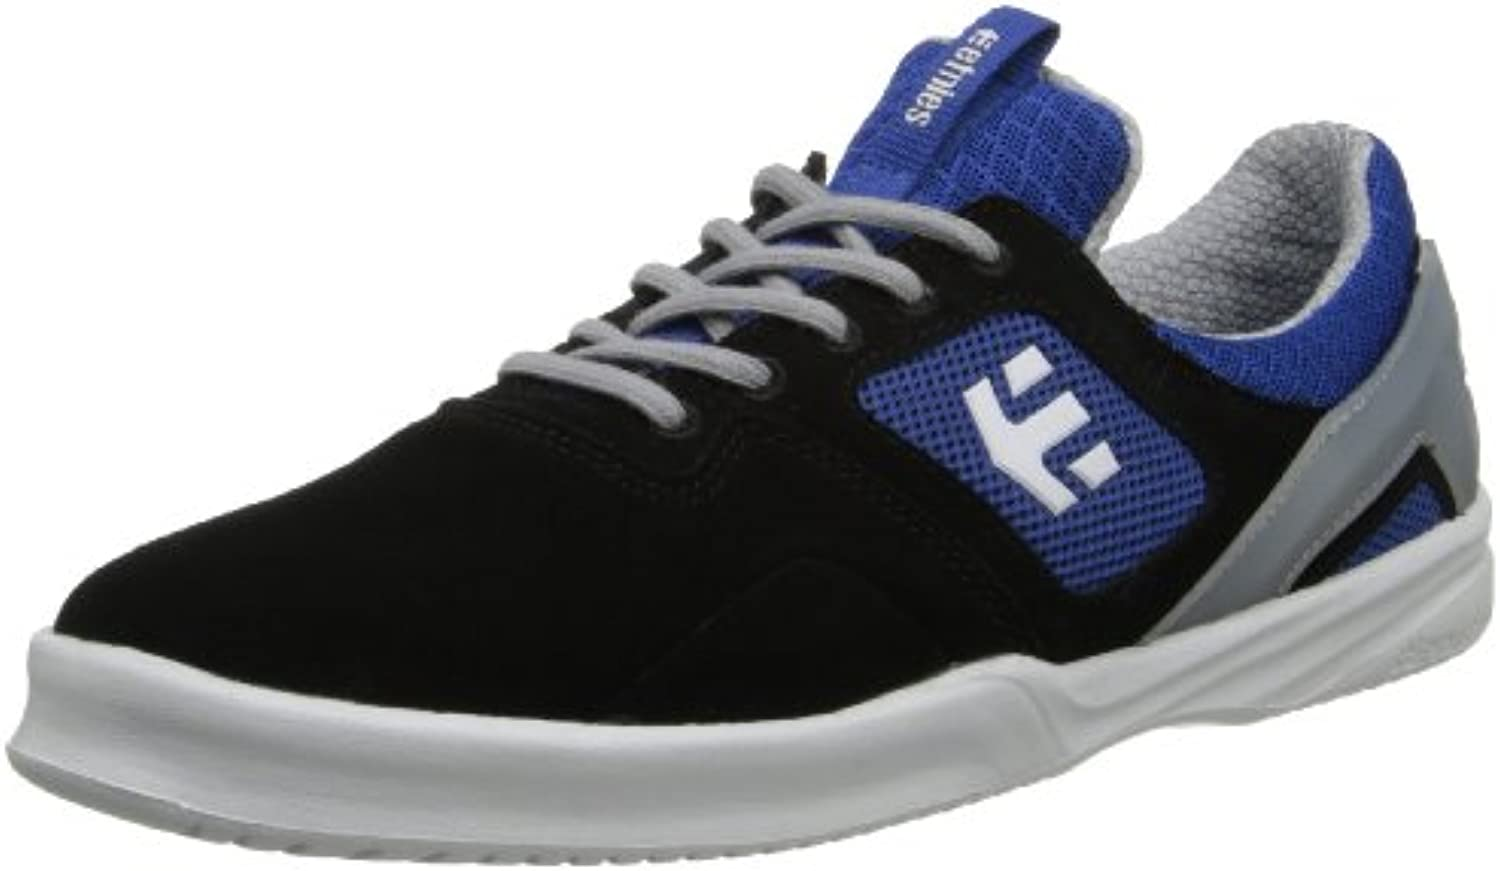 Etnies HIGHLIGHT Low Top Shoe BLACK BLUE GREY